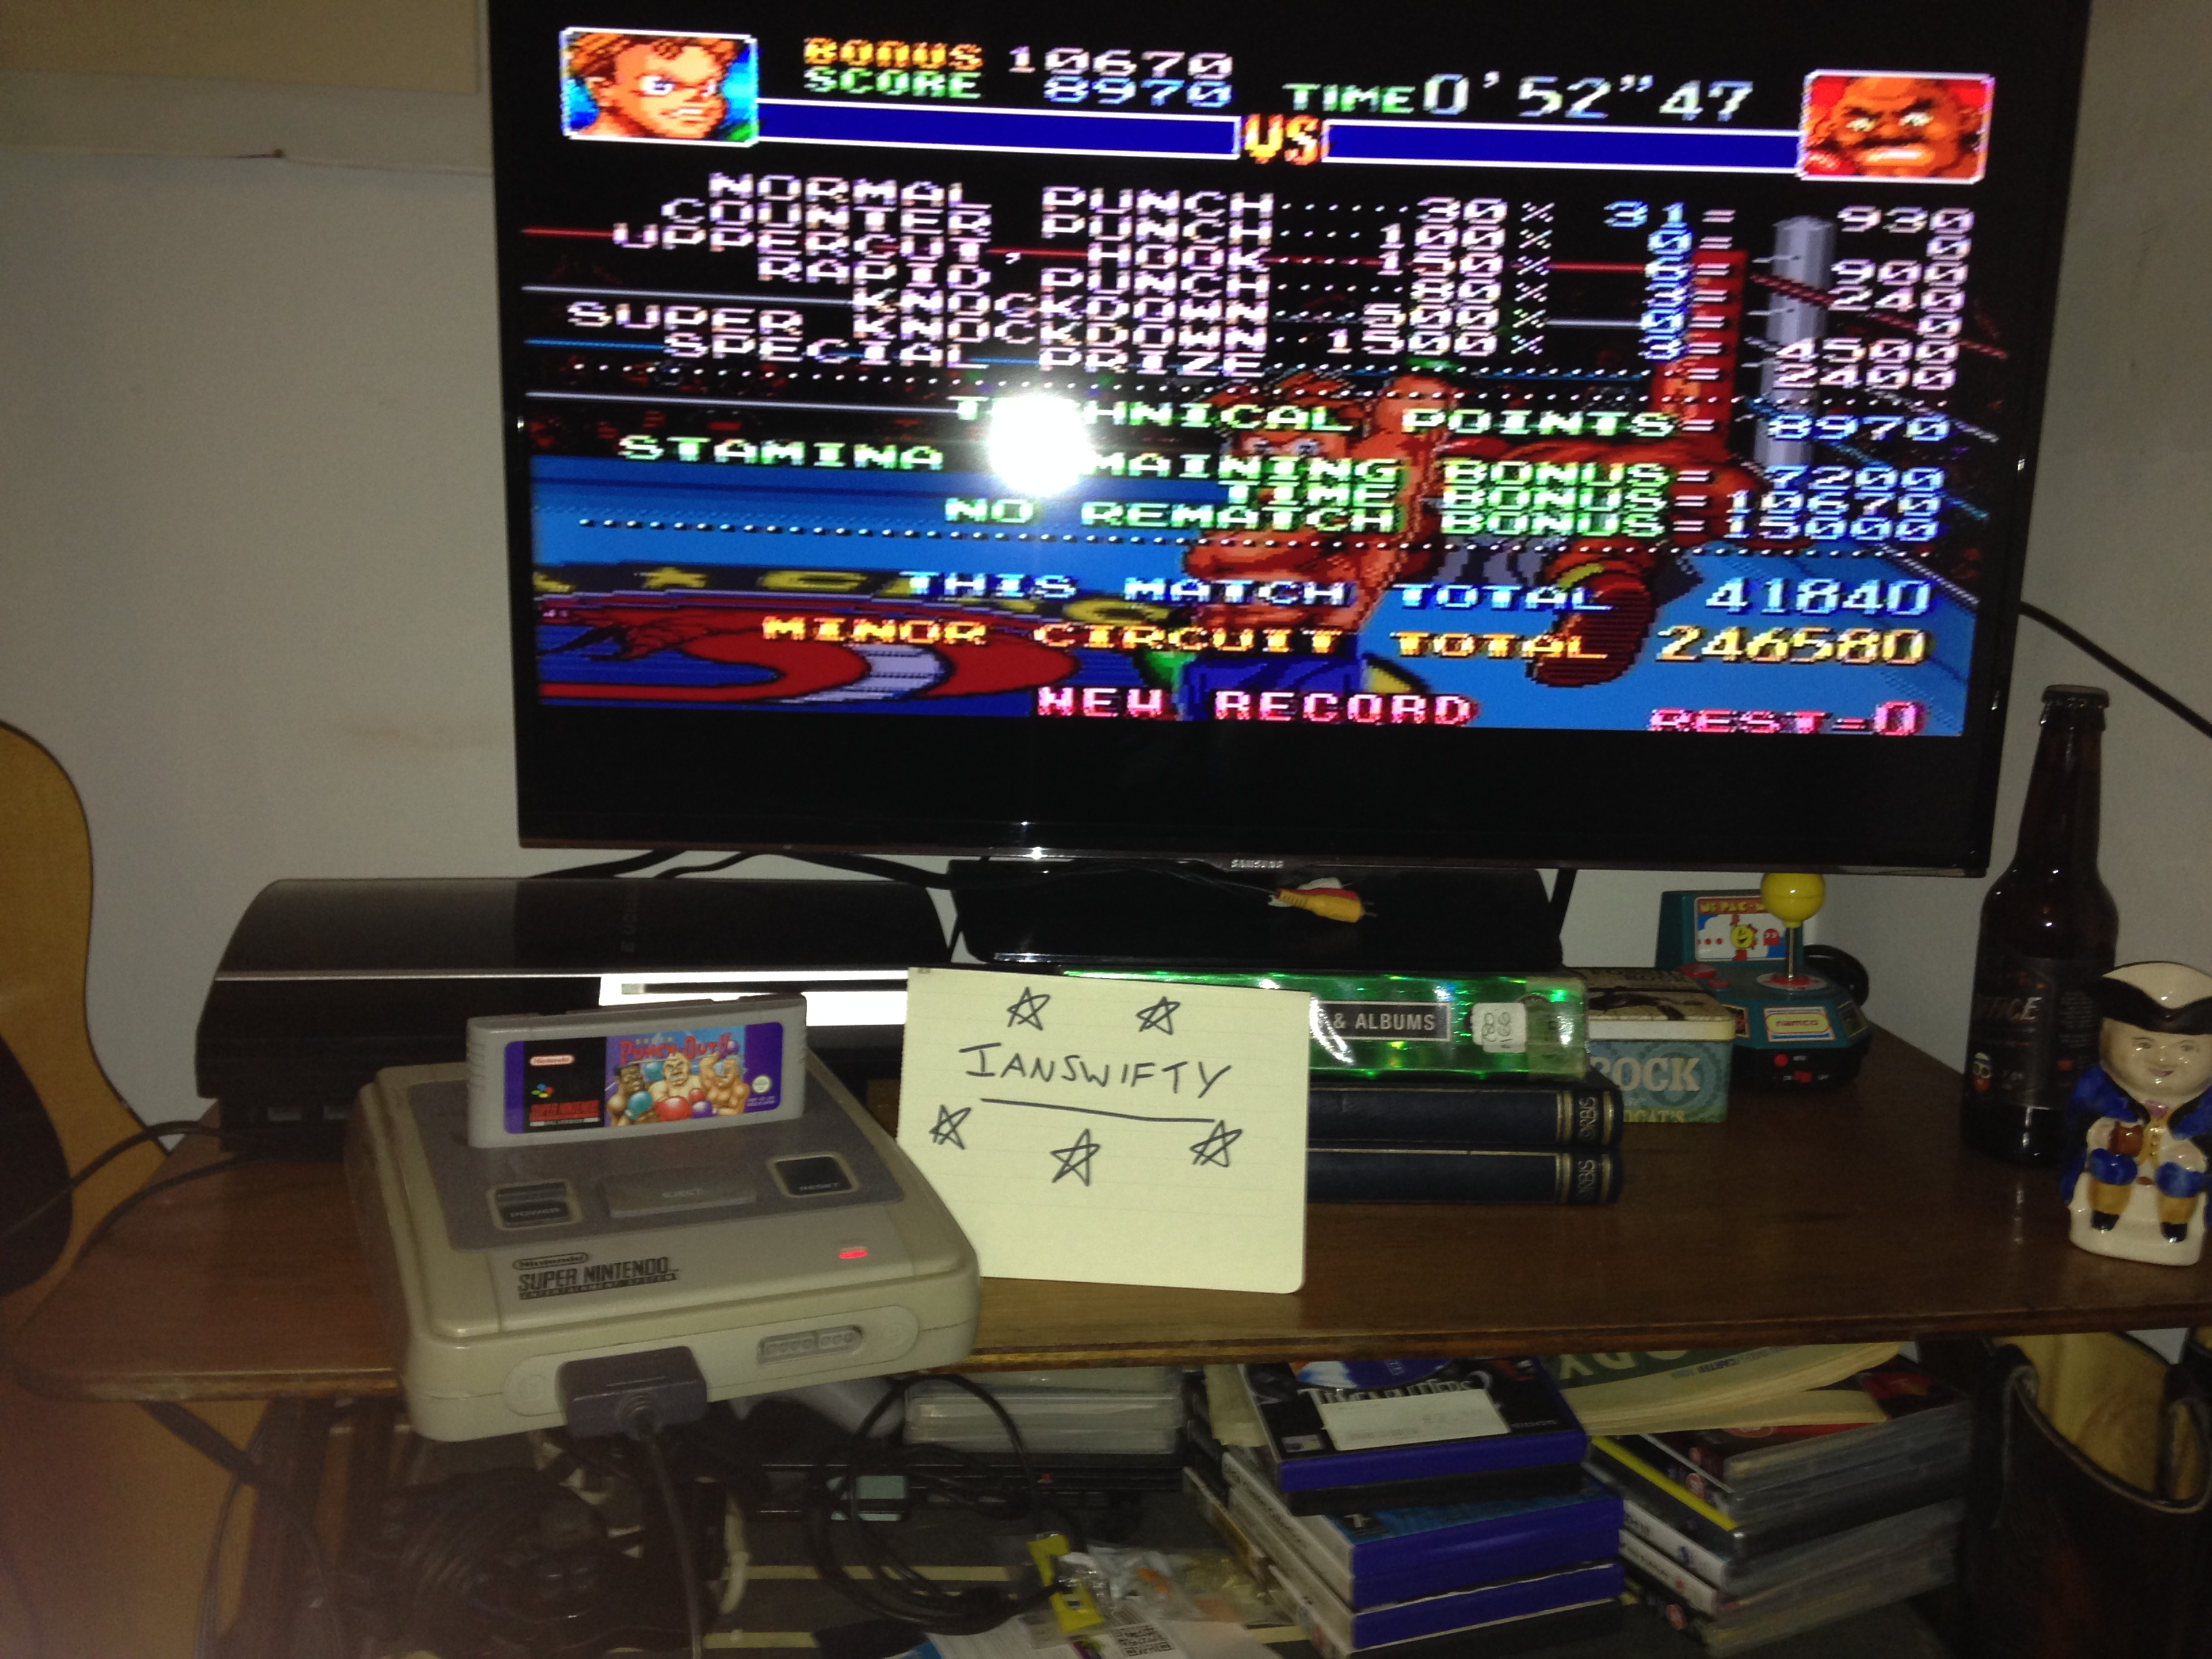 Ianswifty: Super Punch-Out!! [Minor Circuit] (SNES/Super Famicom) 246,580 points on 2017-01-05 13:28:19